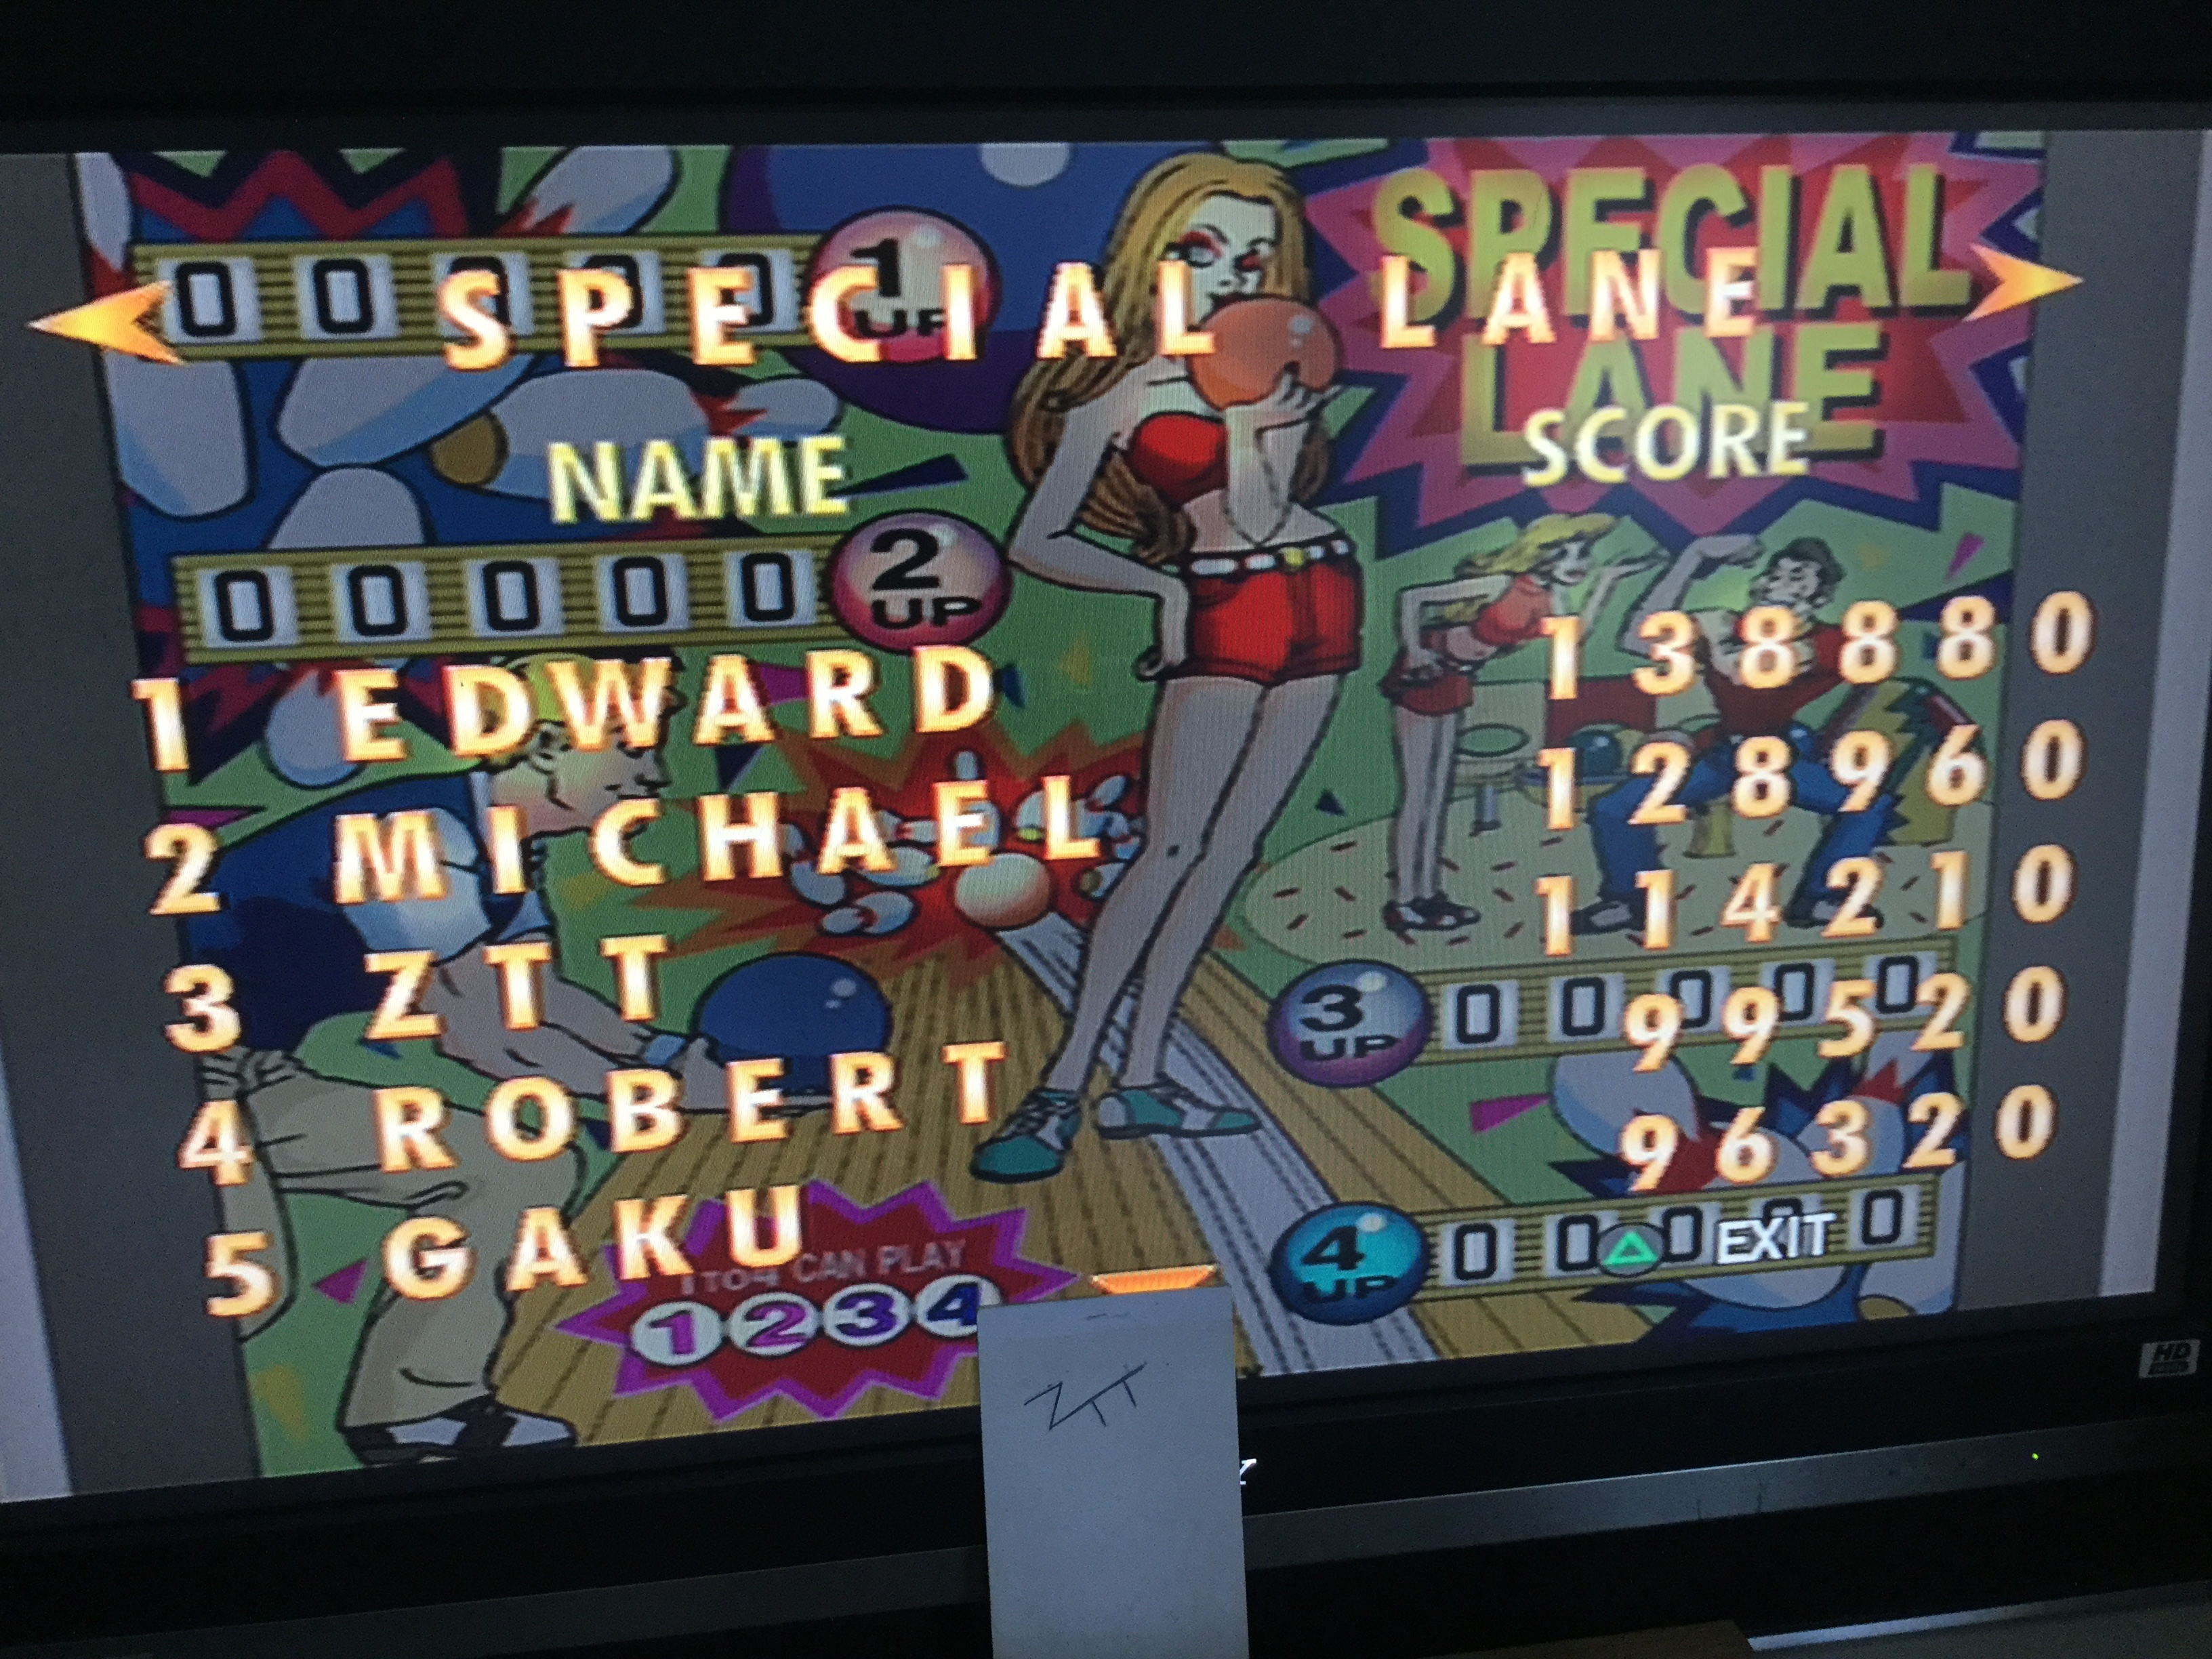 Frankie: Play It Pinball: Special Lane (Playstation 2) 114,210 points on 2019-08-17 06:28:10